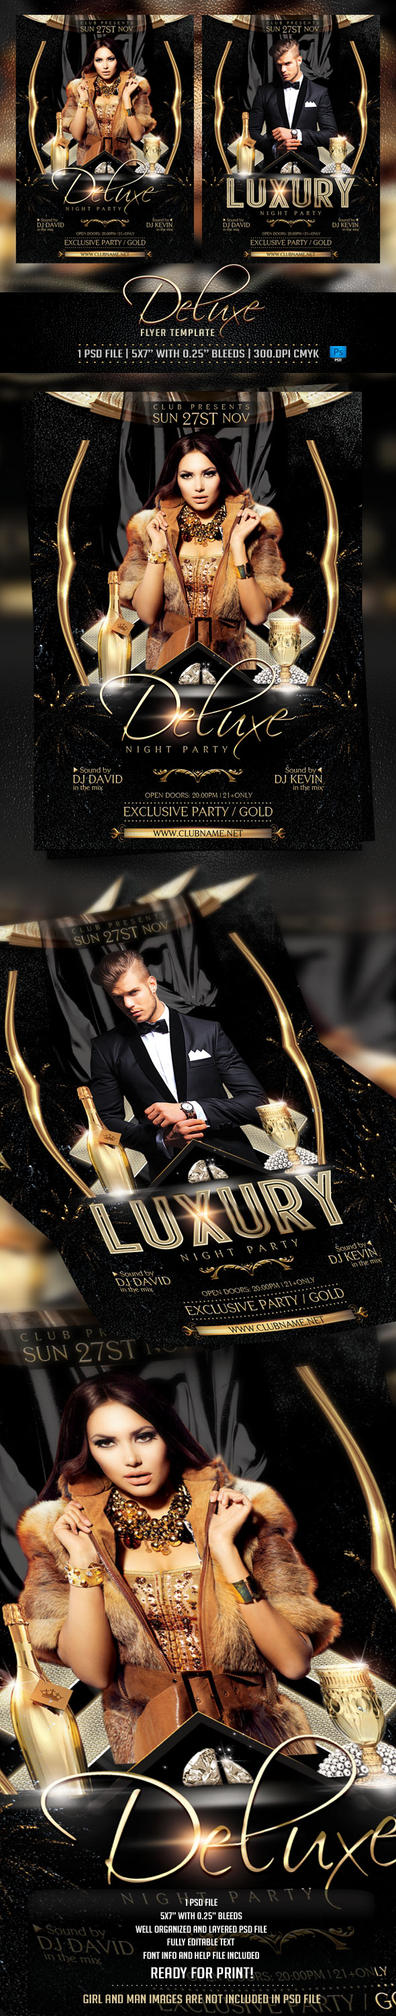 Deluxe and Luxury Flyer Template by BriellDesign